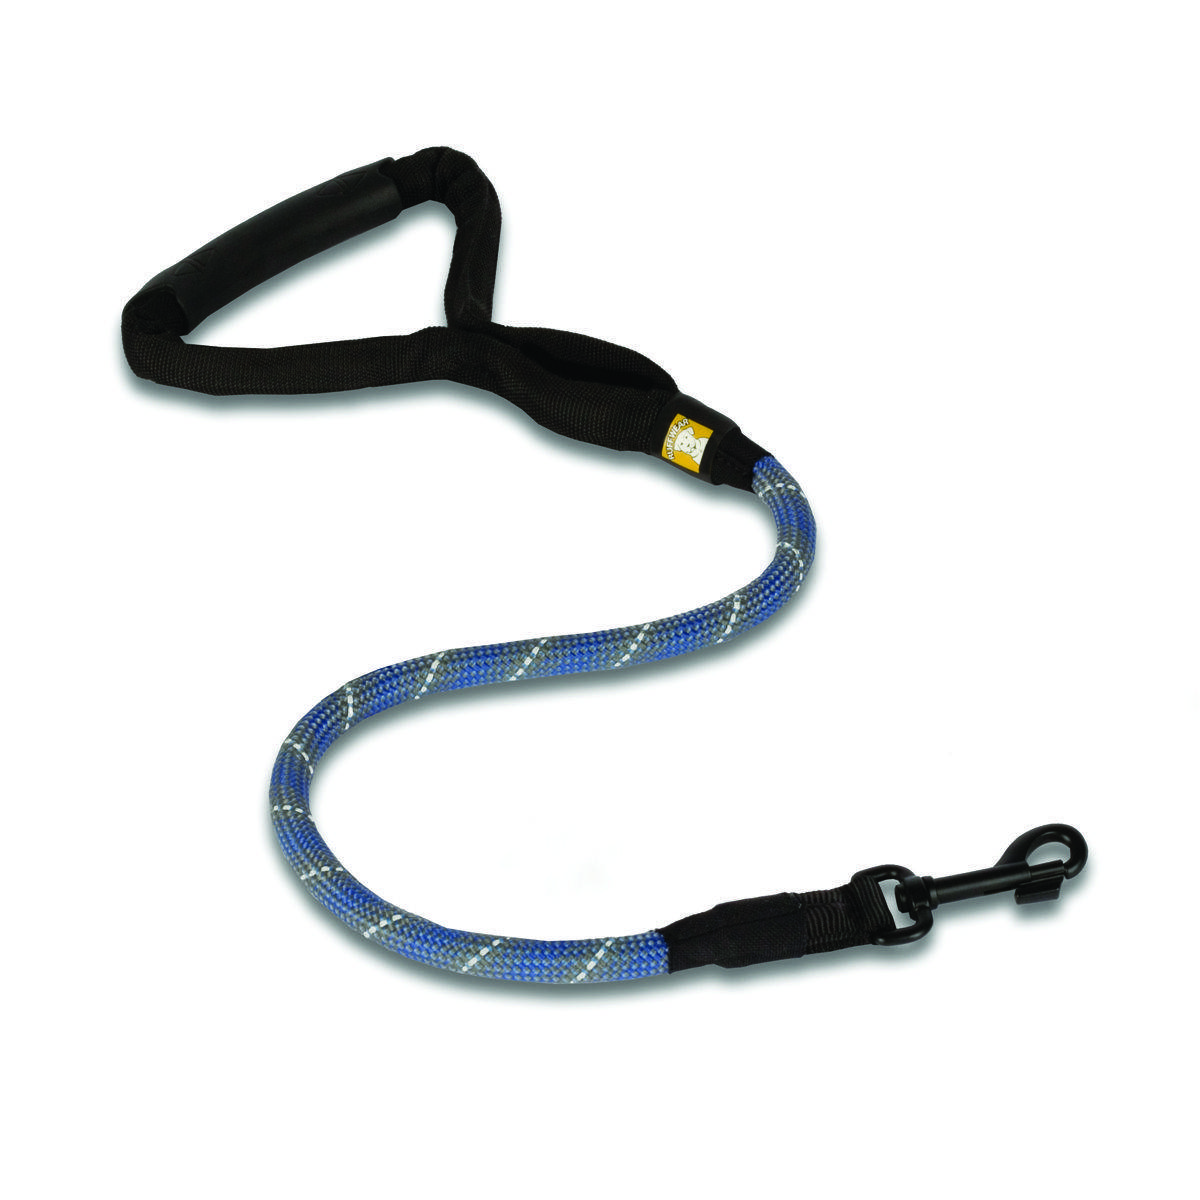 Produktbild: Ruffwear Knot-a-Long Leash blå